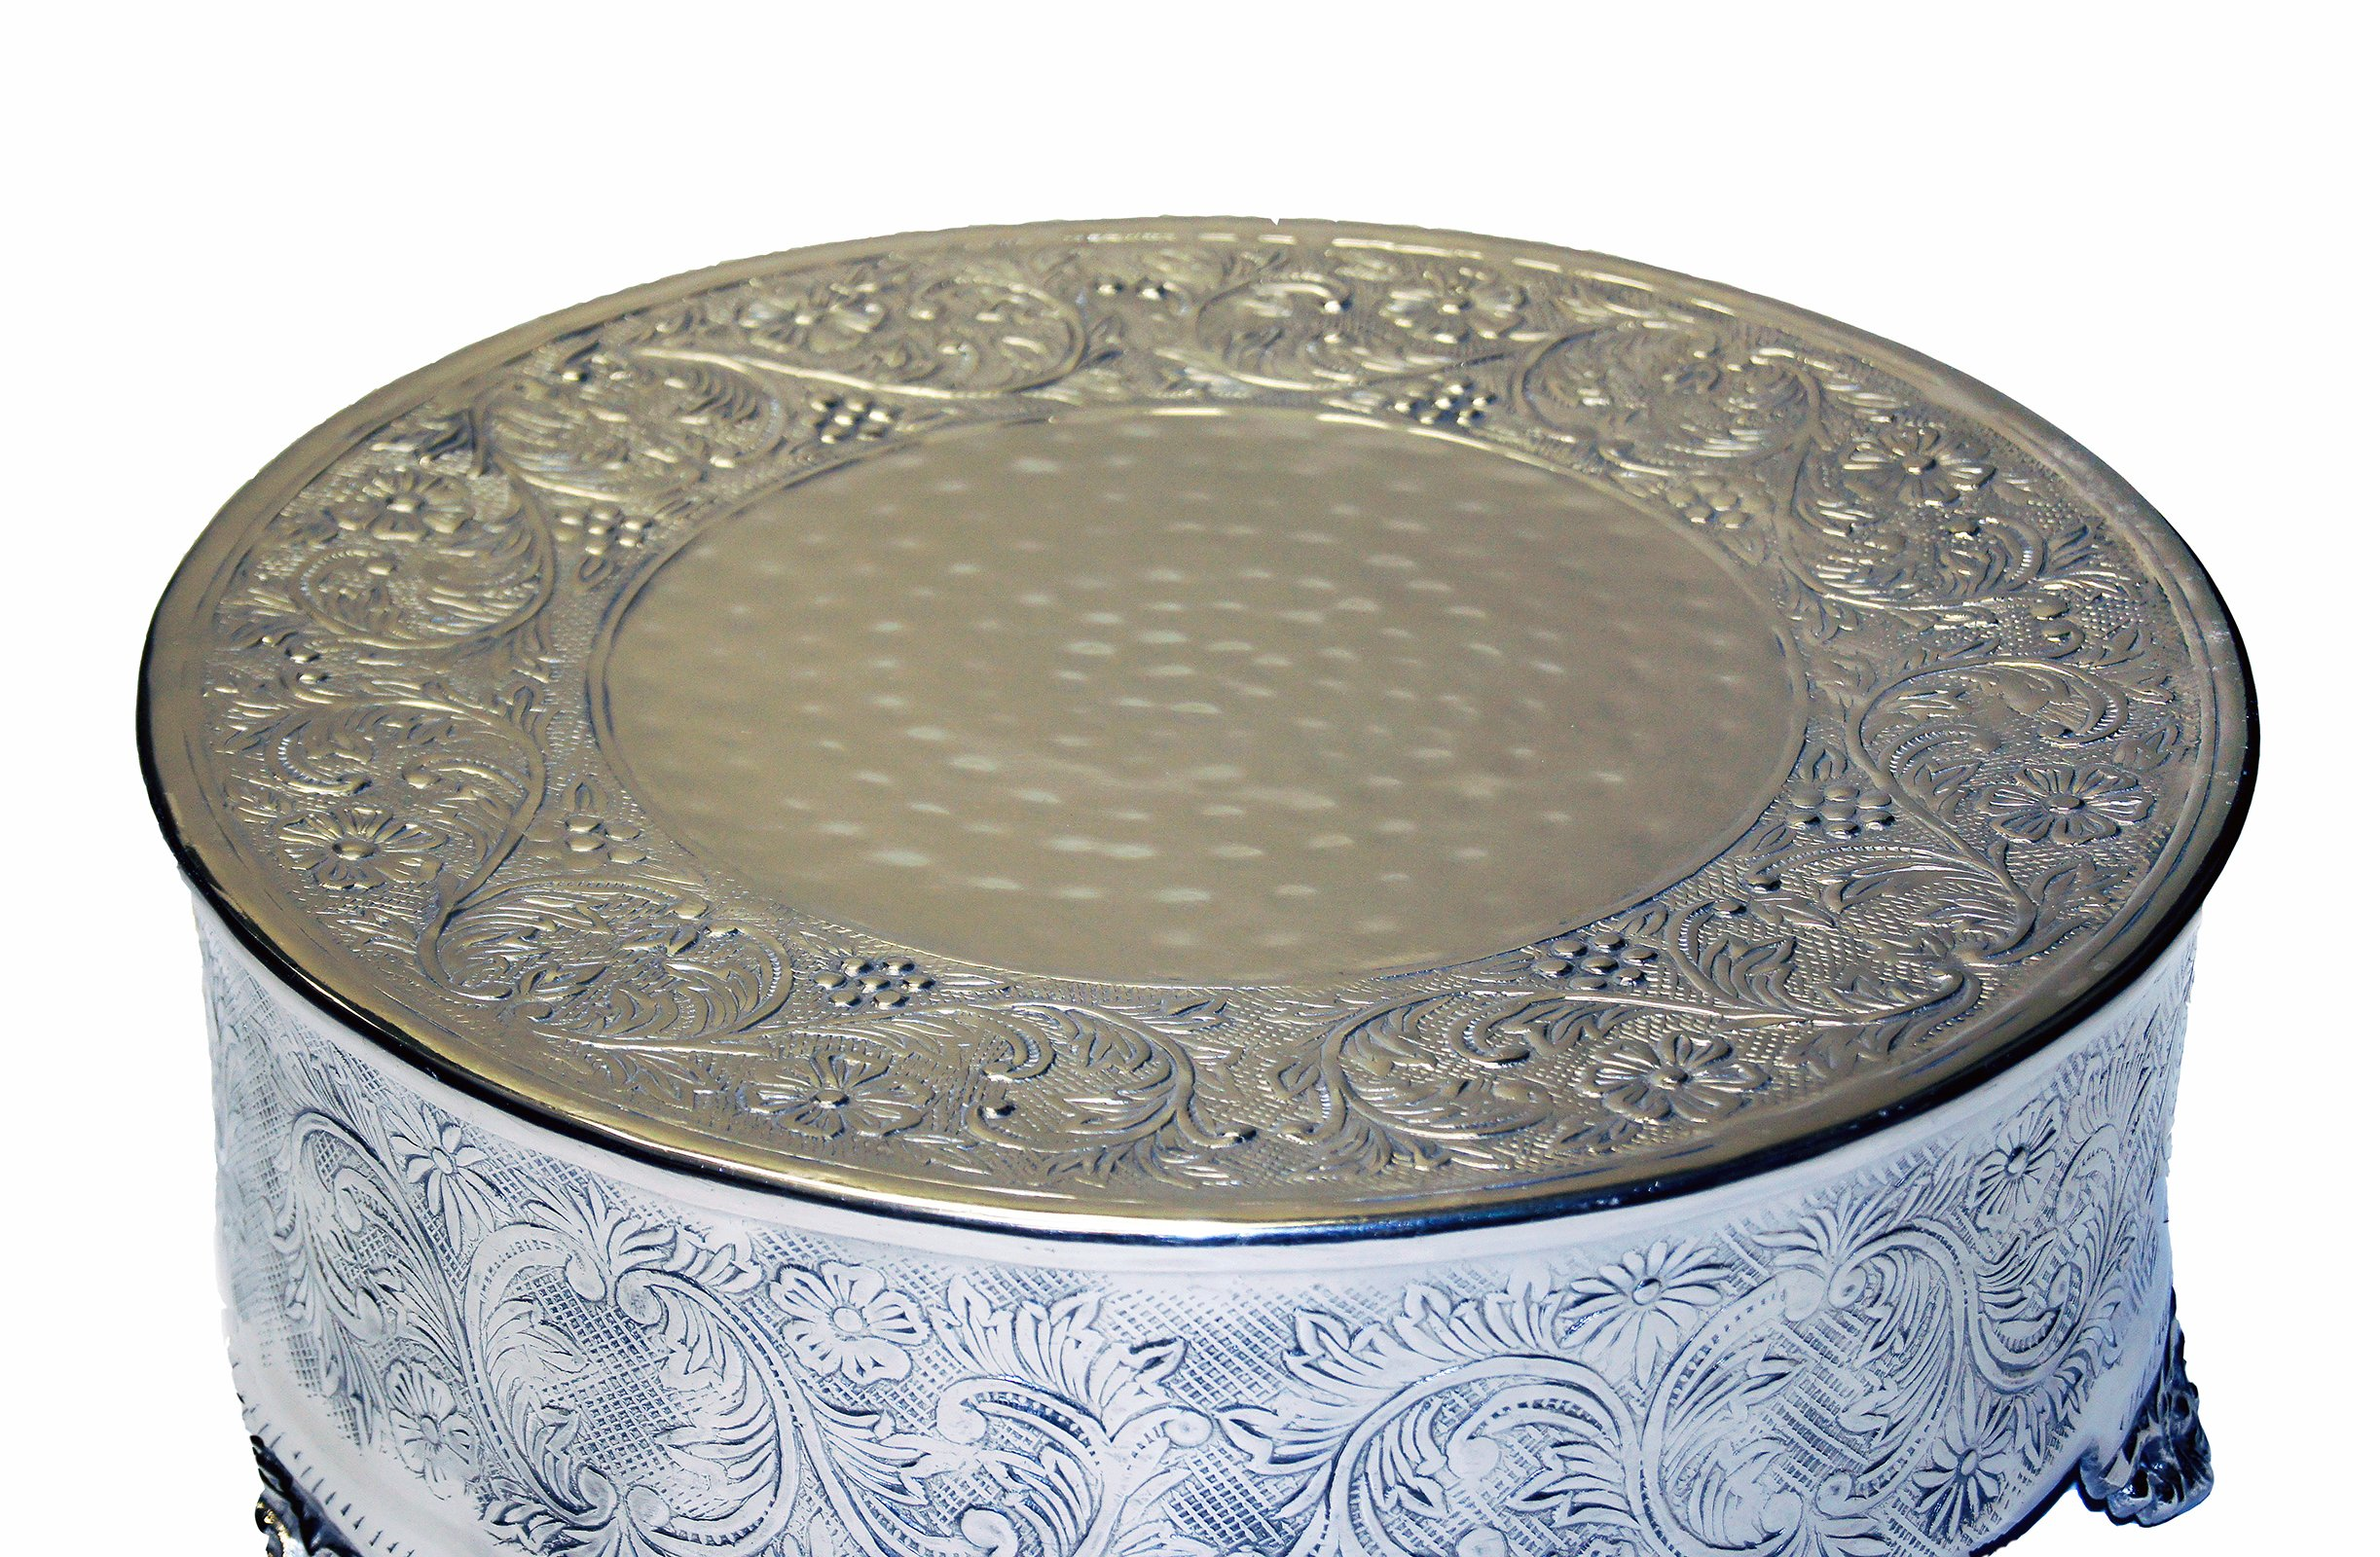 GiftBay Wedding Cake Stand 18'' Round Silver, Strongly Built for Multilayer Cake Weight